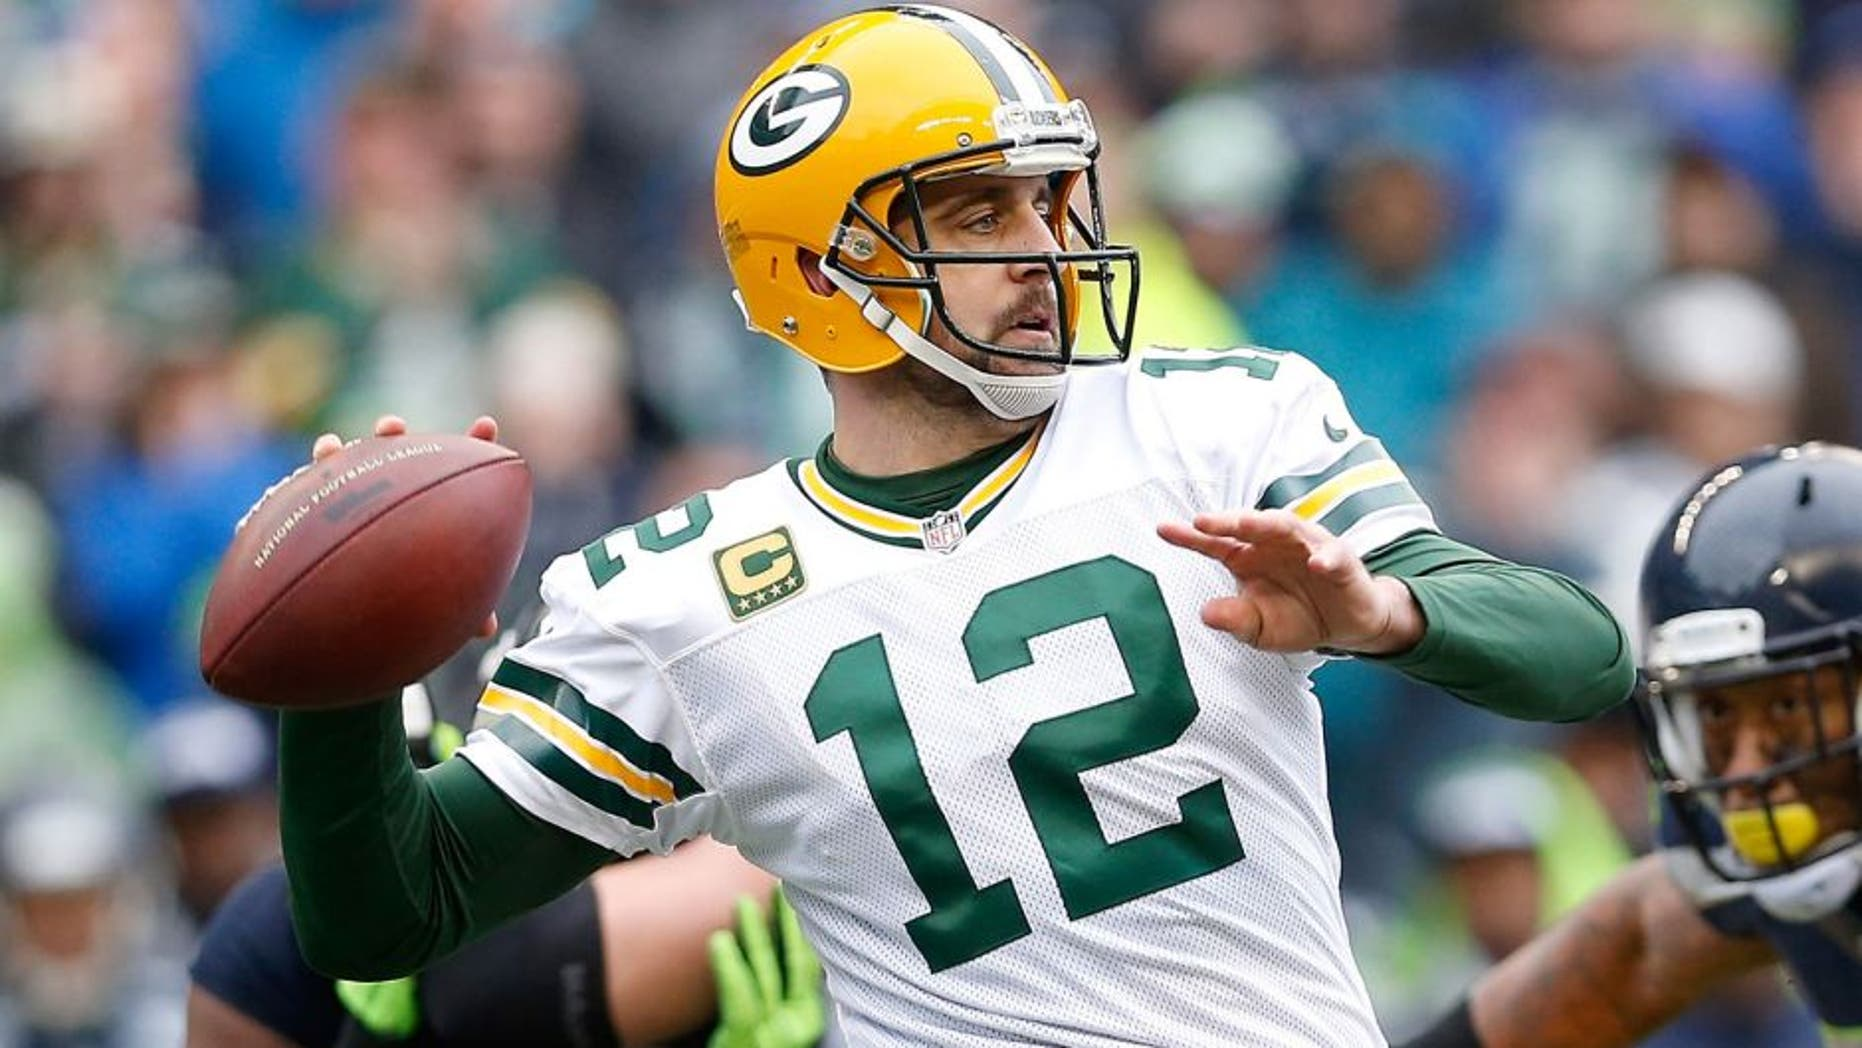 SEATTLE, WA - JANUARY 18: Quarterback Aaron Rodgers #12 of the Green Bay Packers in action during the 2015 NFC Championship game against the Seattle Seahawks at CenturyLink Field on January 18, 2015 in Seattle, Washington. The Seahawks defeated the Packers 28-22 in overtime. (Photo by Christian Petersen/Getty Images)